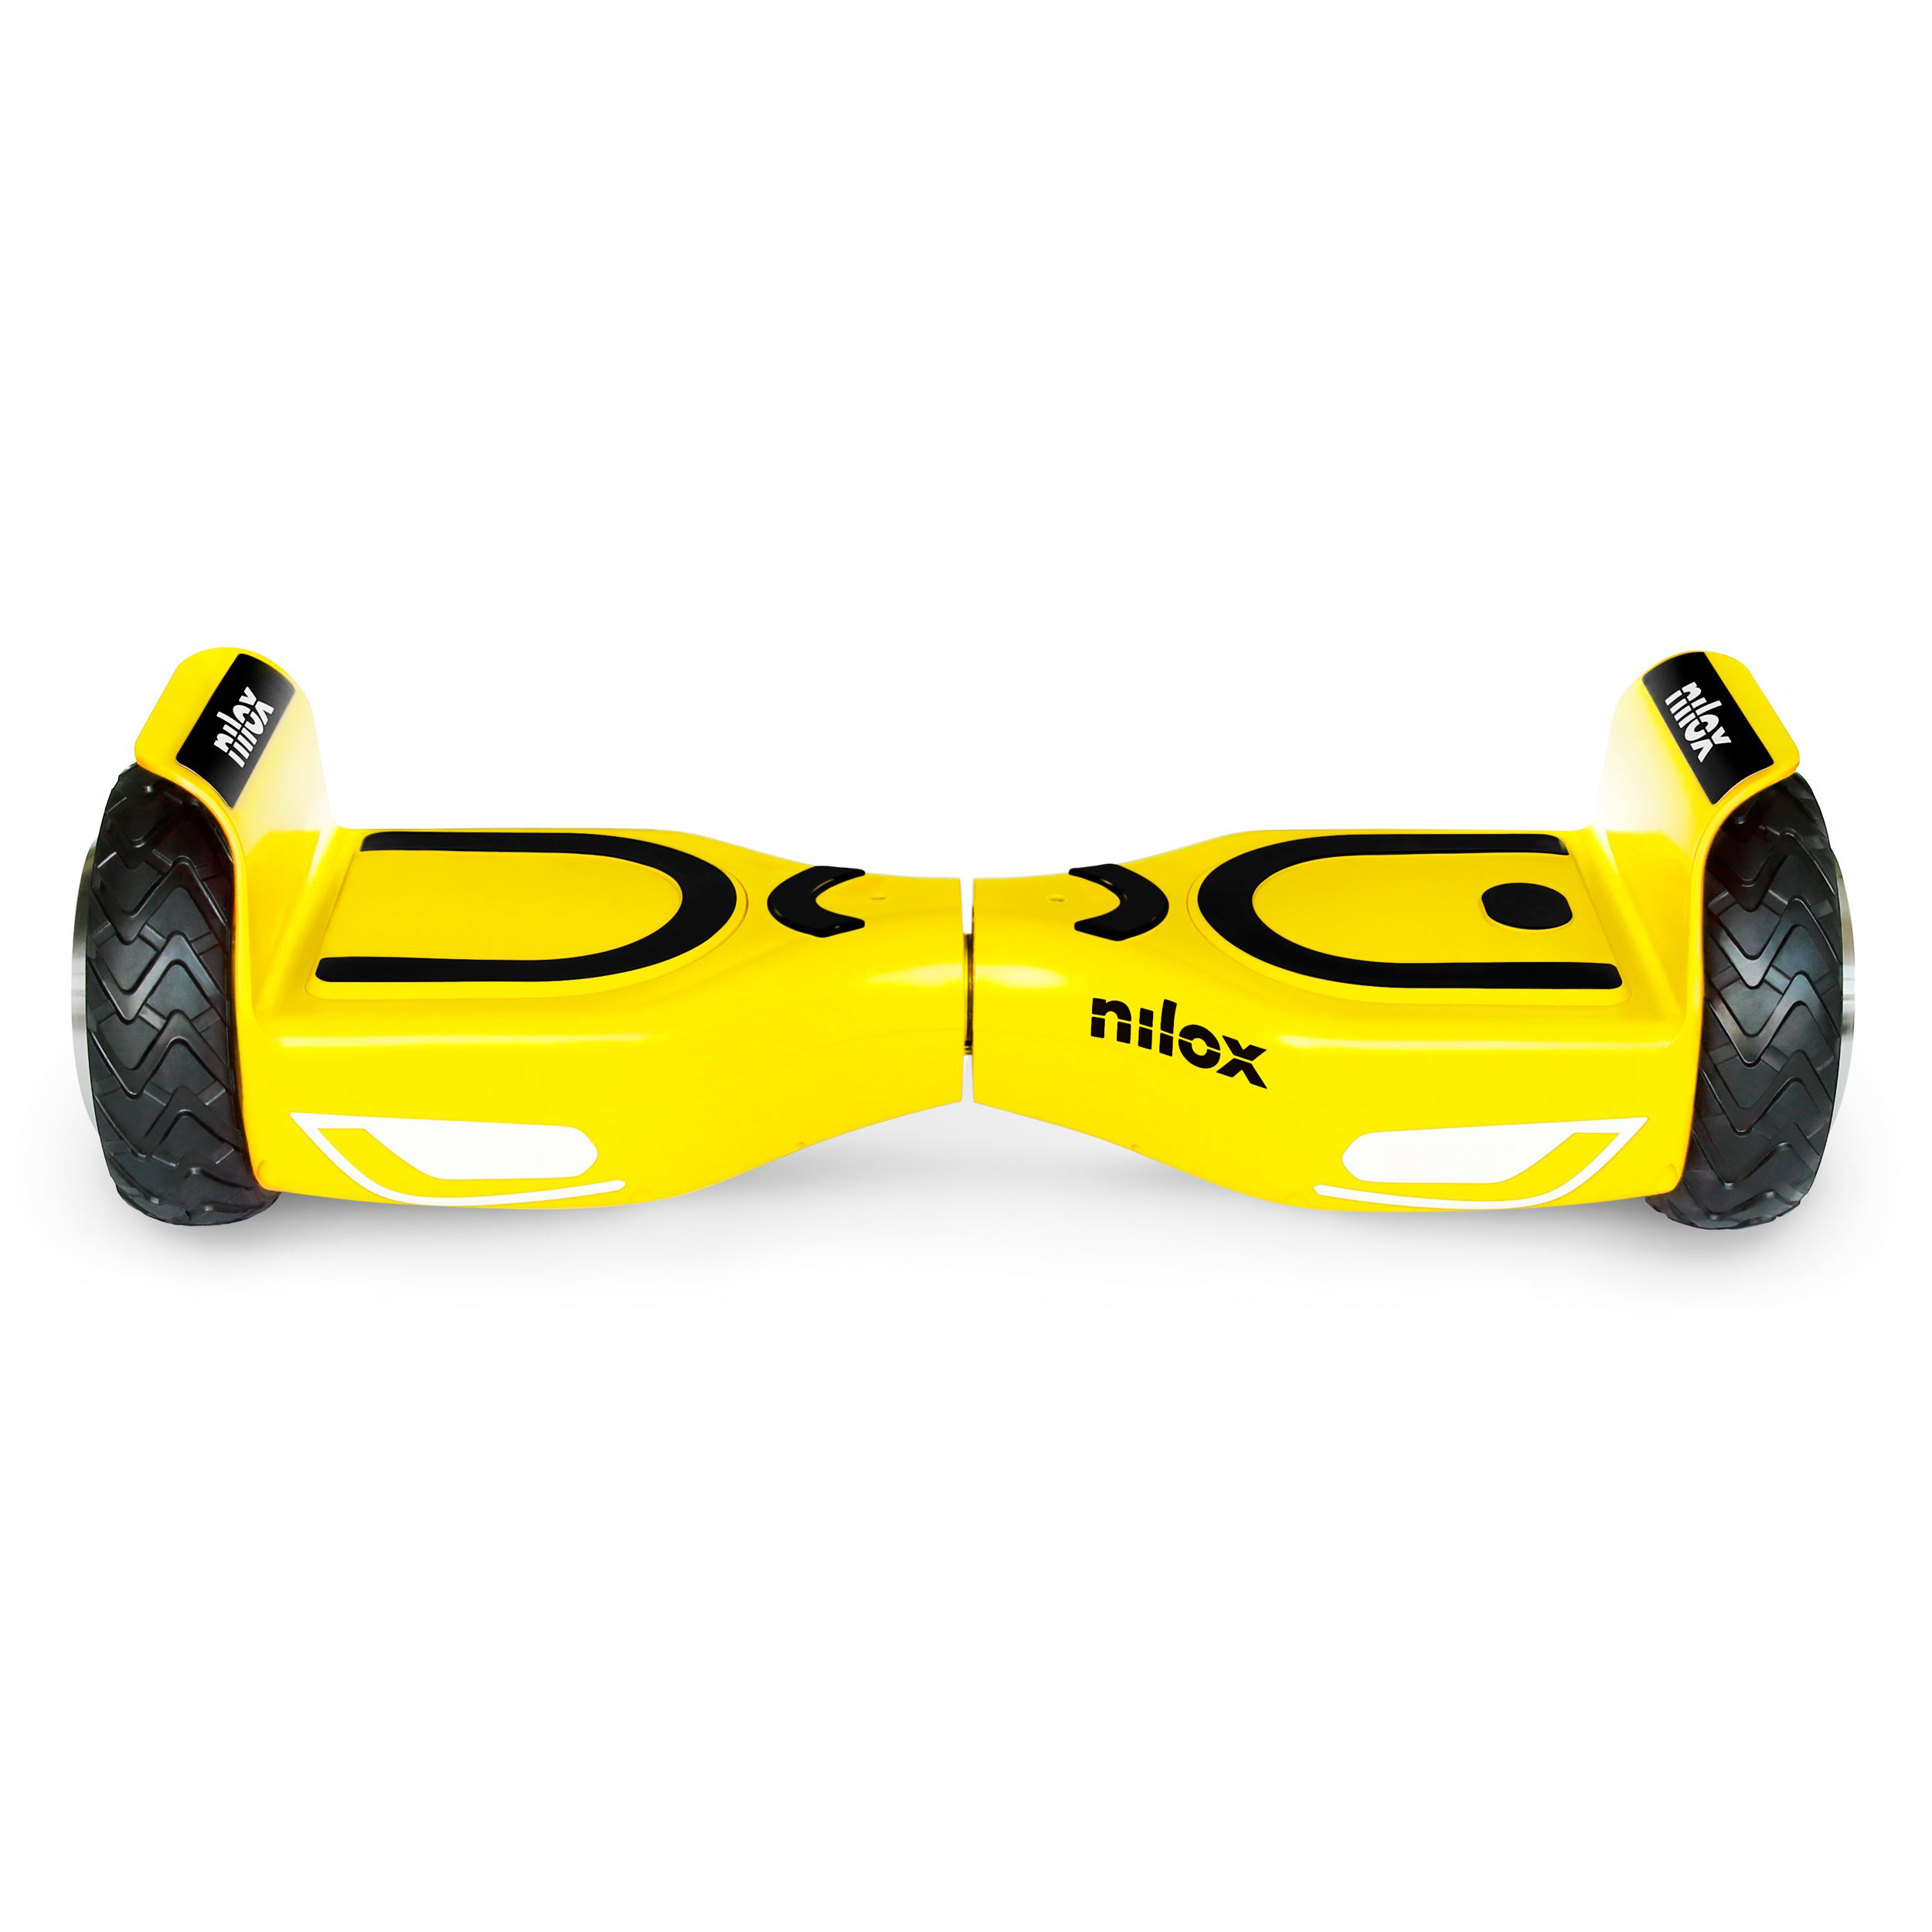 doc-2-hoverboard-yellow-30nxbk65nwn03-505146-hd.jpg